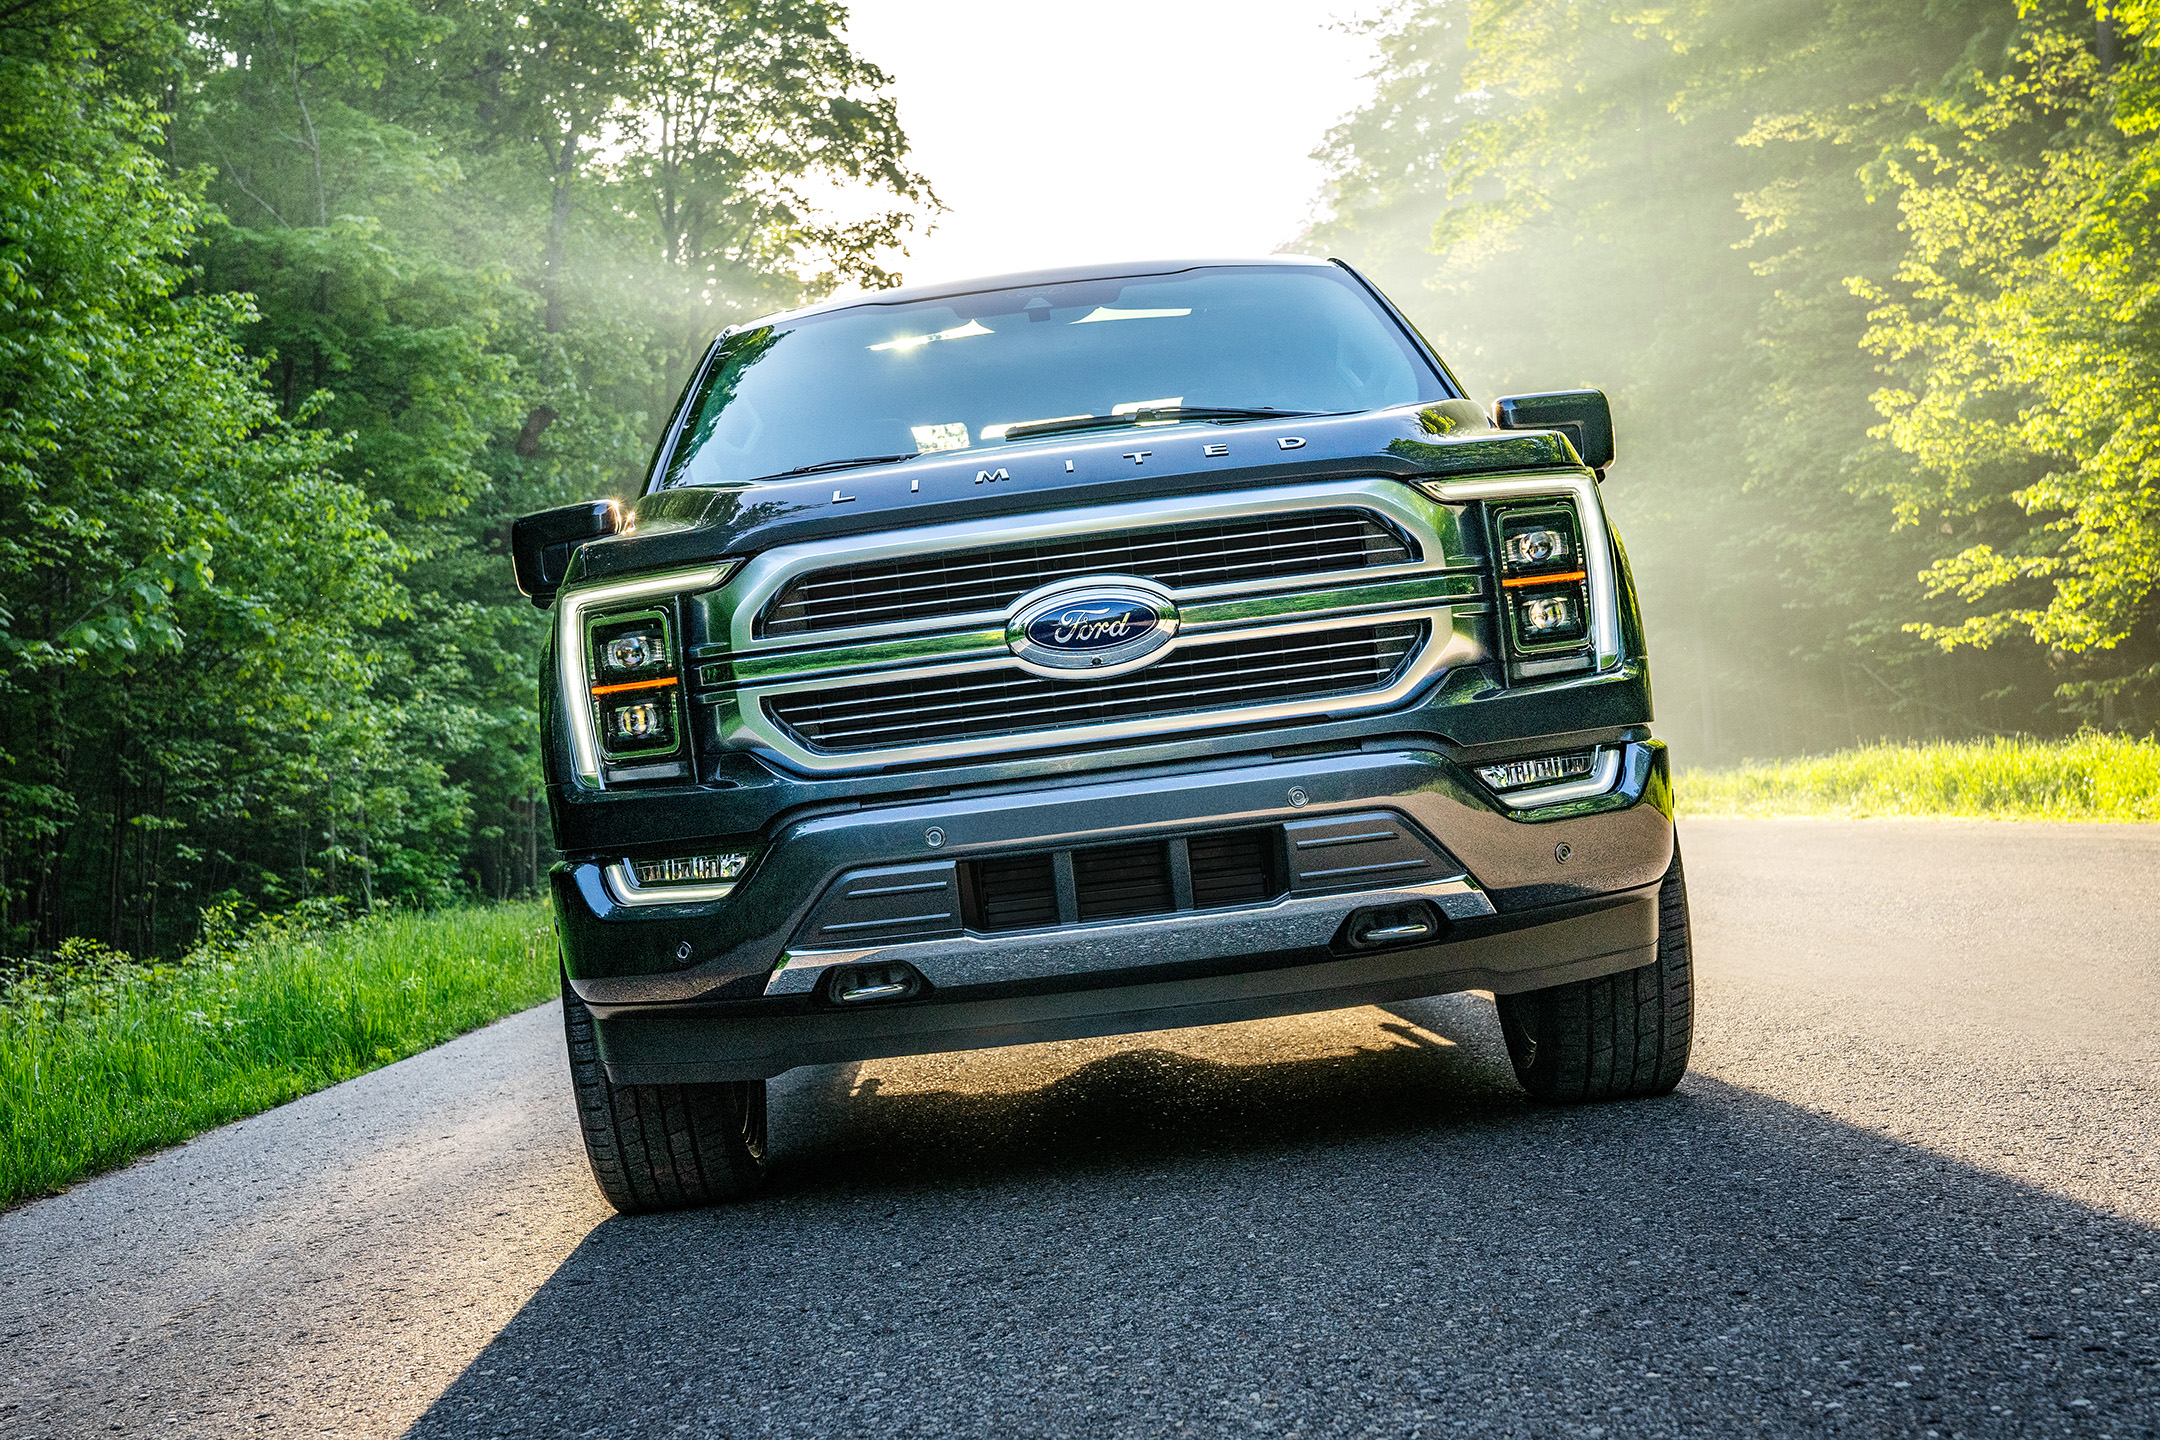 2021 Ford F-150: America's Favorite Vehicle Gets an Upgrade